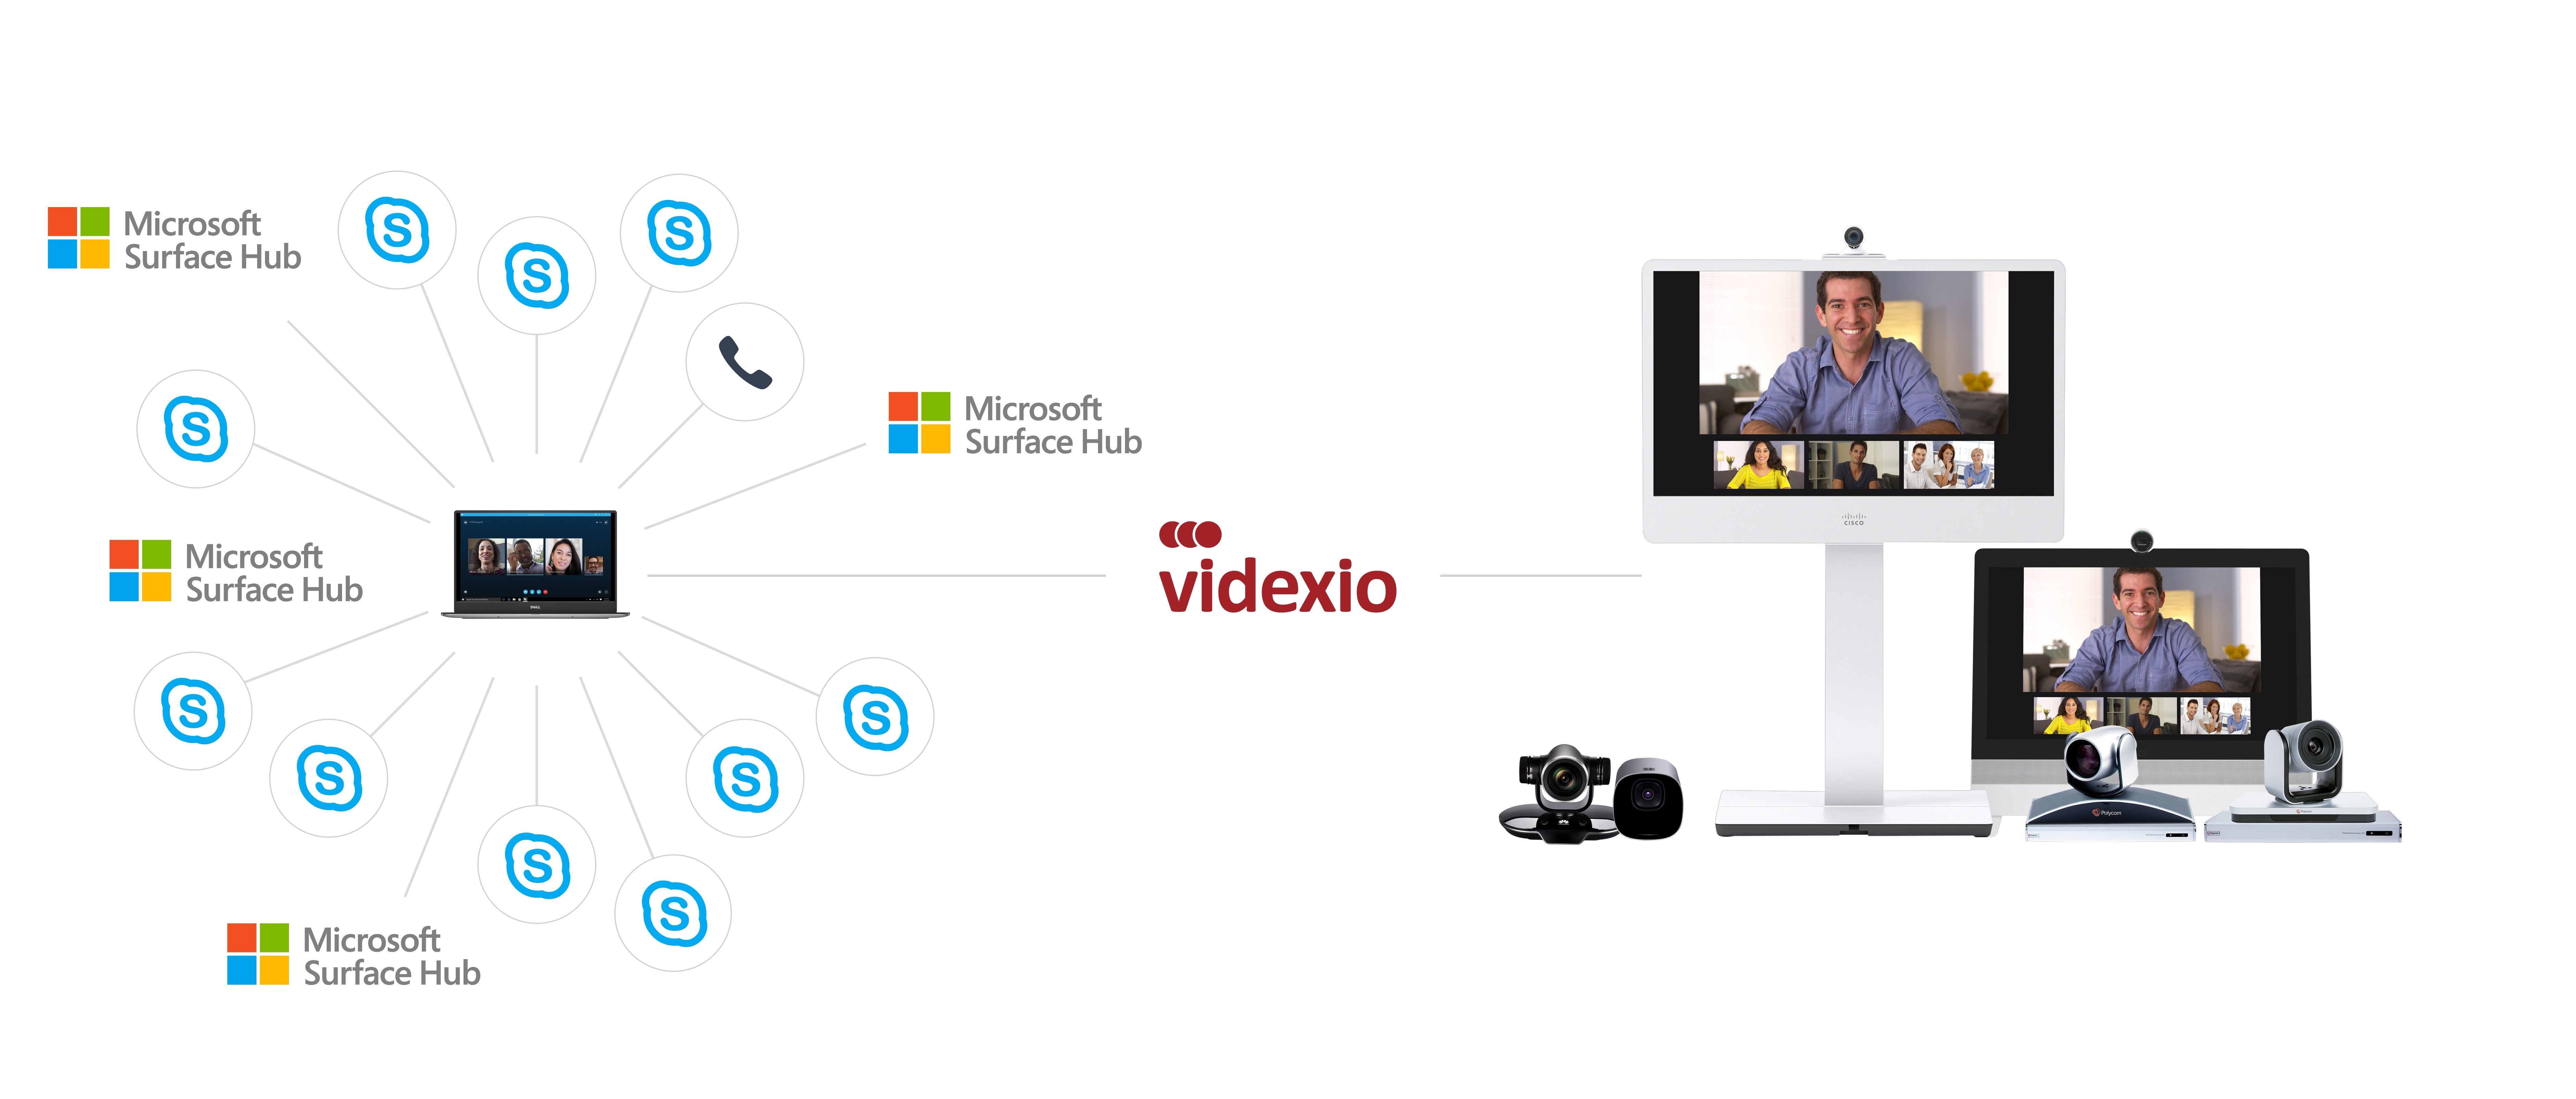 Videxio's Skype for Business Gateway-as-a-Service